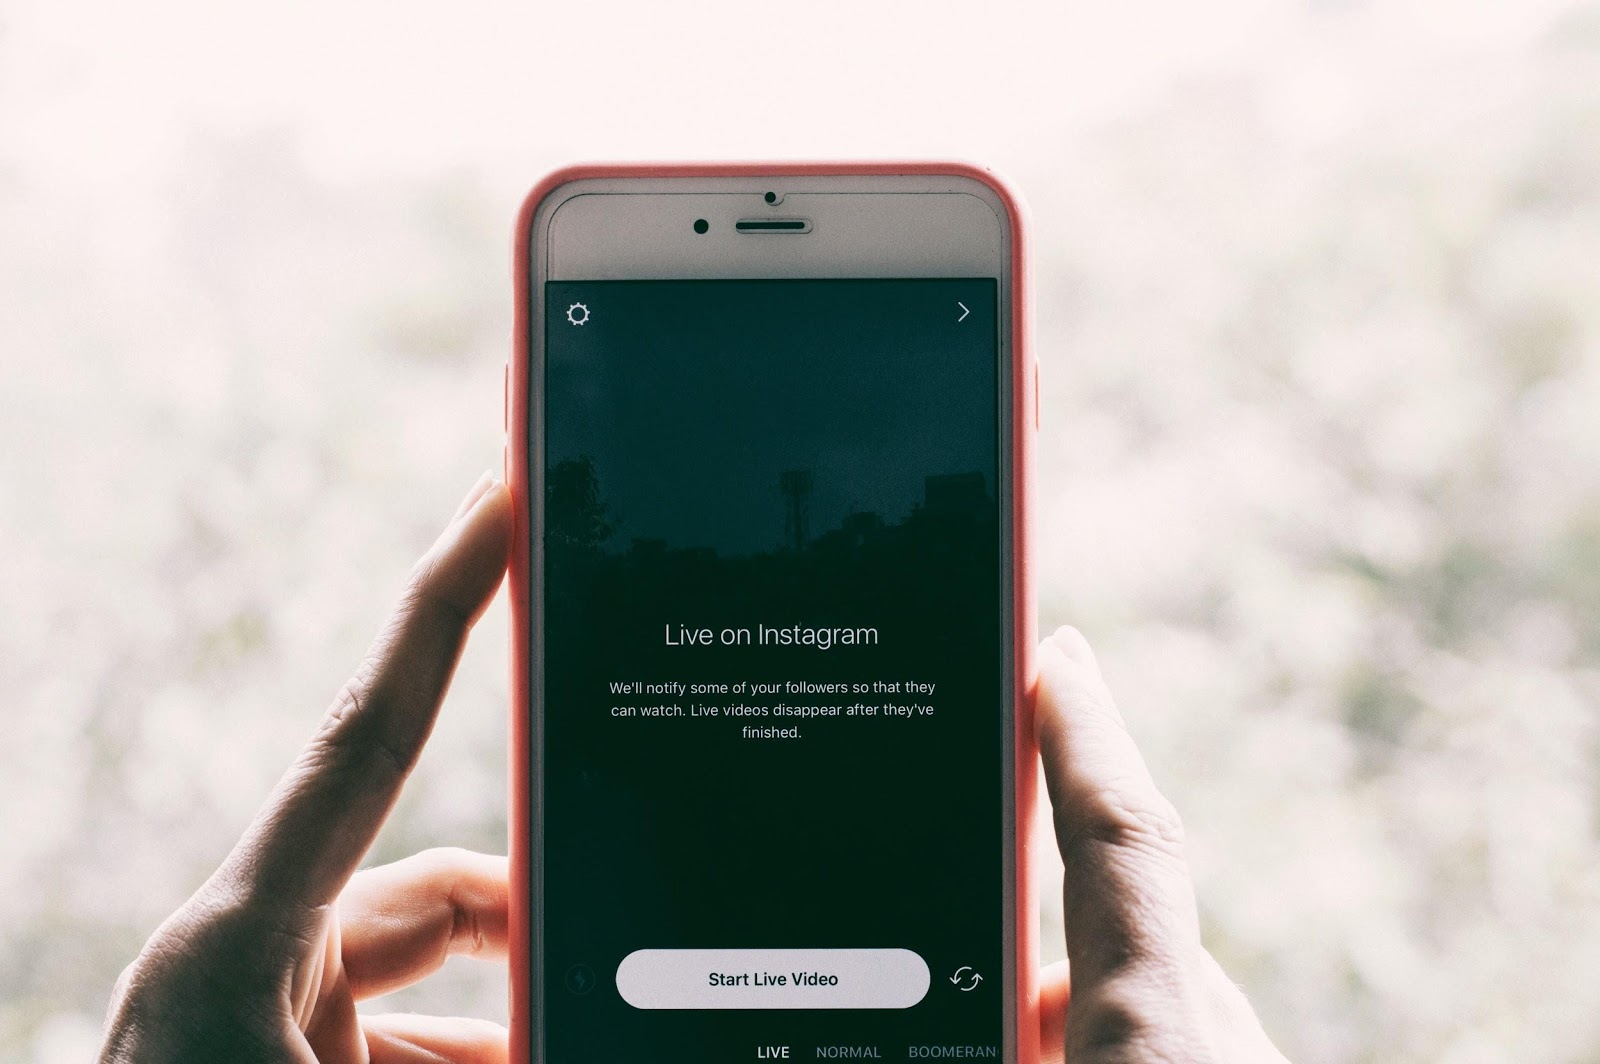 Come utilizzare Instagram come strumento di marketing